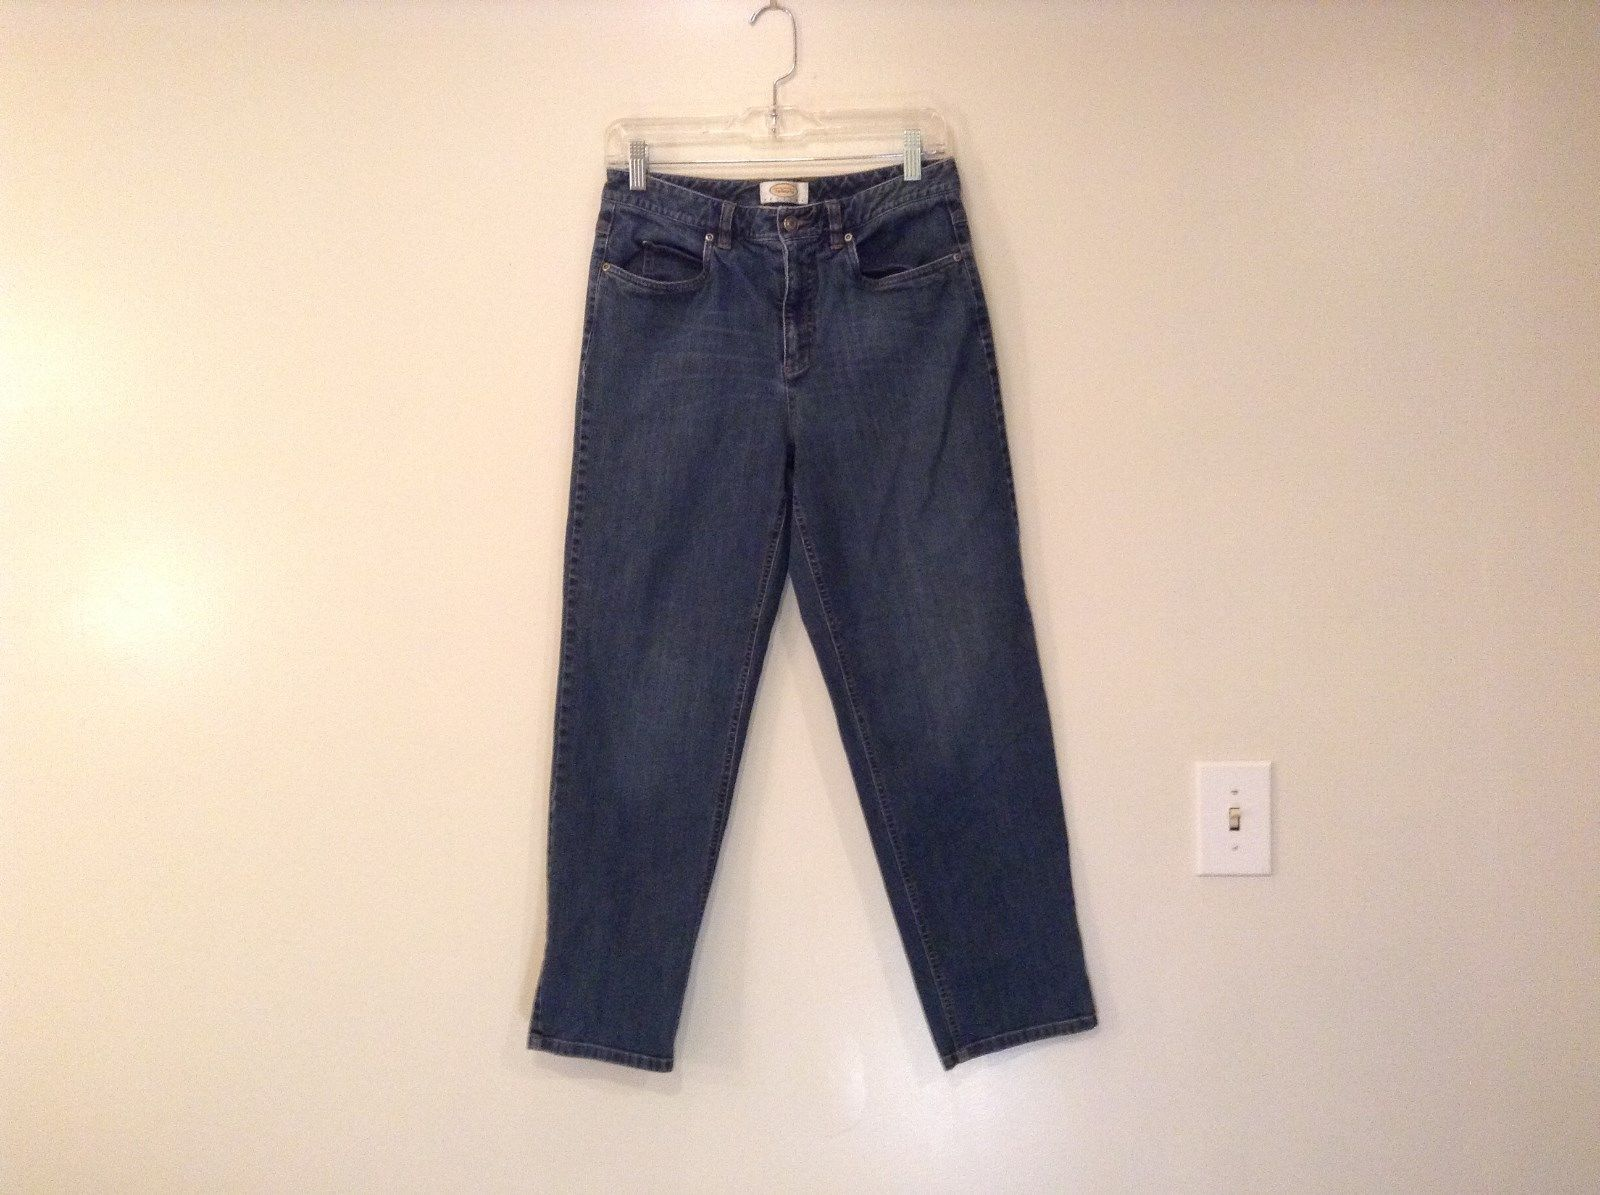 Blue Jeans Talbots Petites Stretch Size 8 Front and Back Pockets